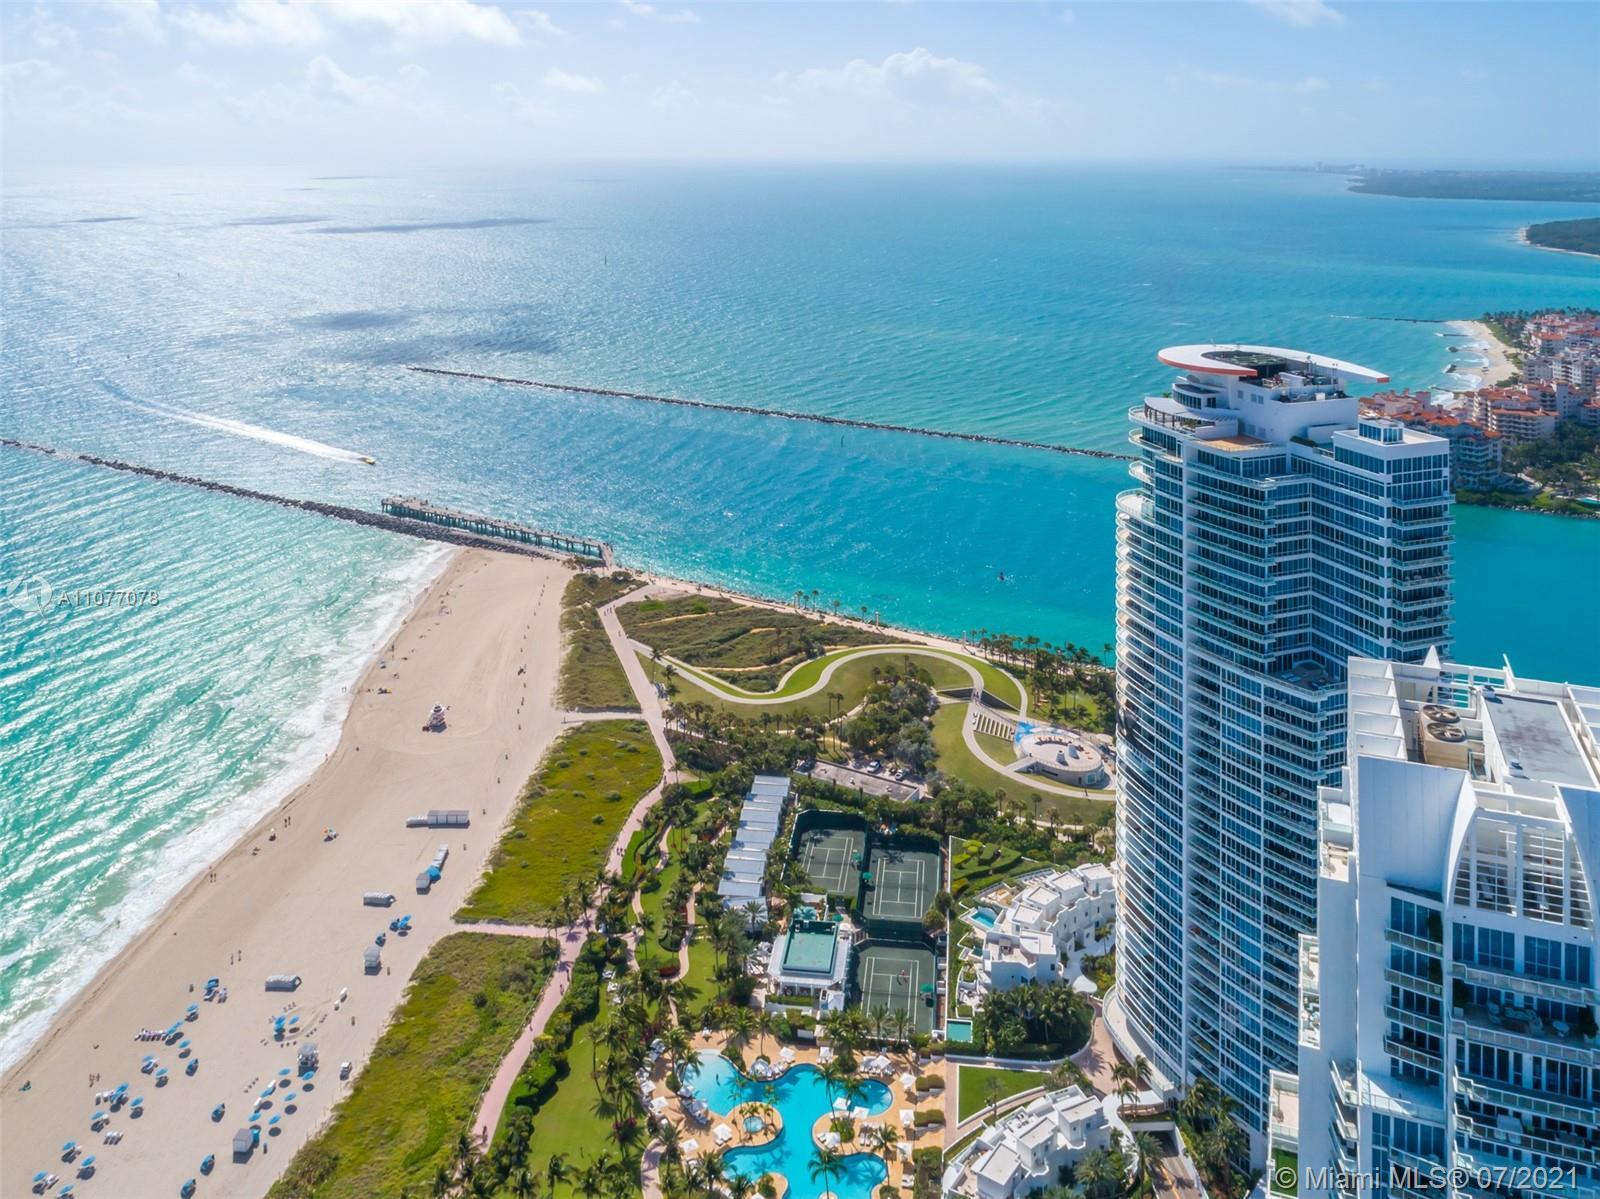 Enjoy sticking southwest exposures from this corner residence with some of the most beautiful Miami